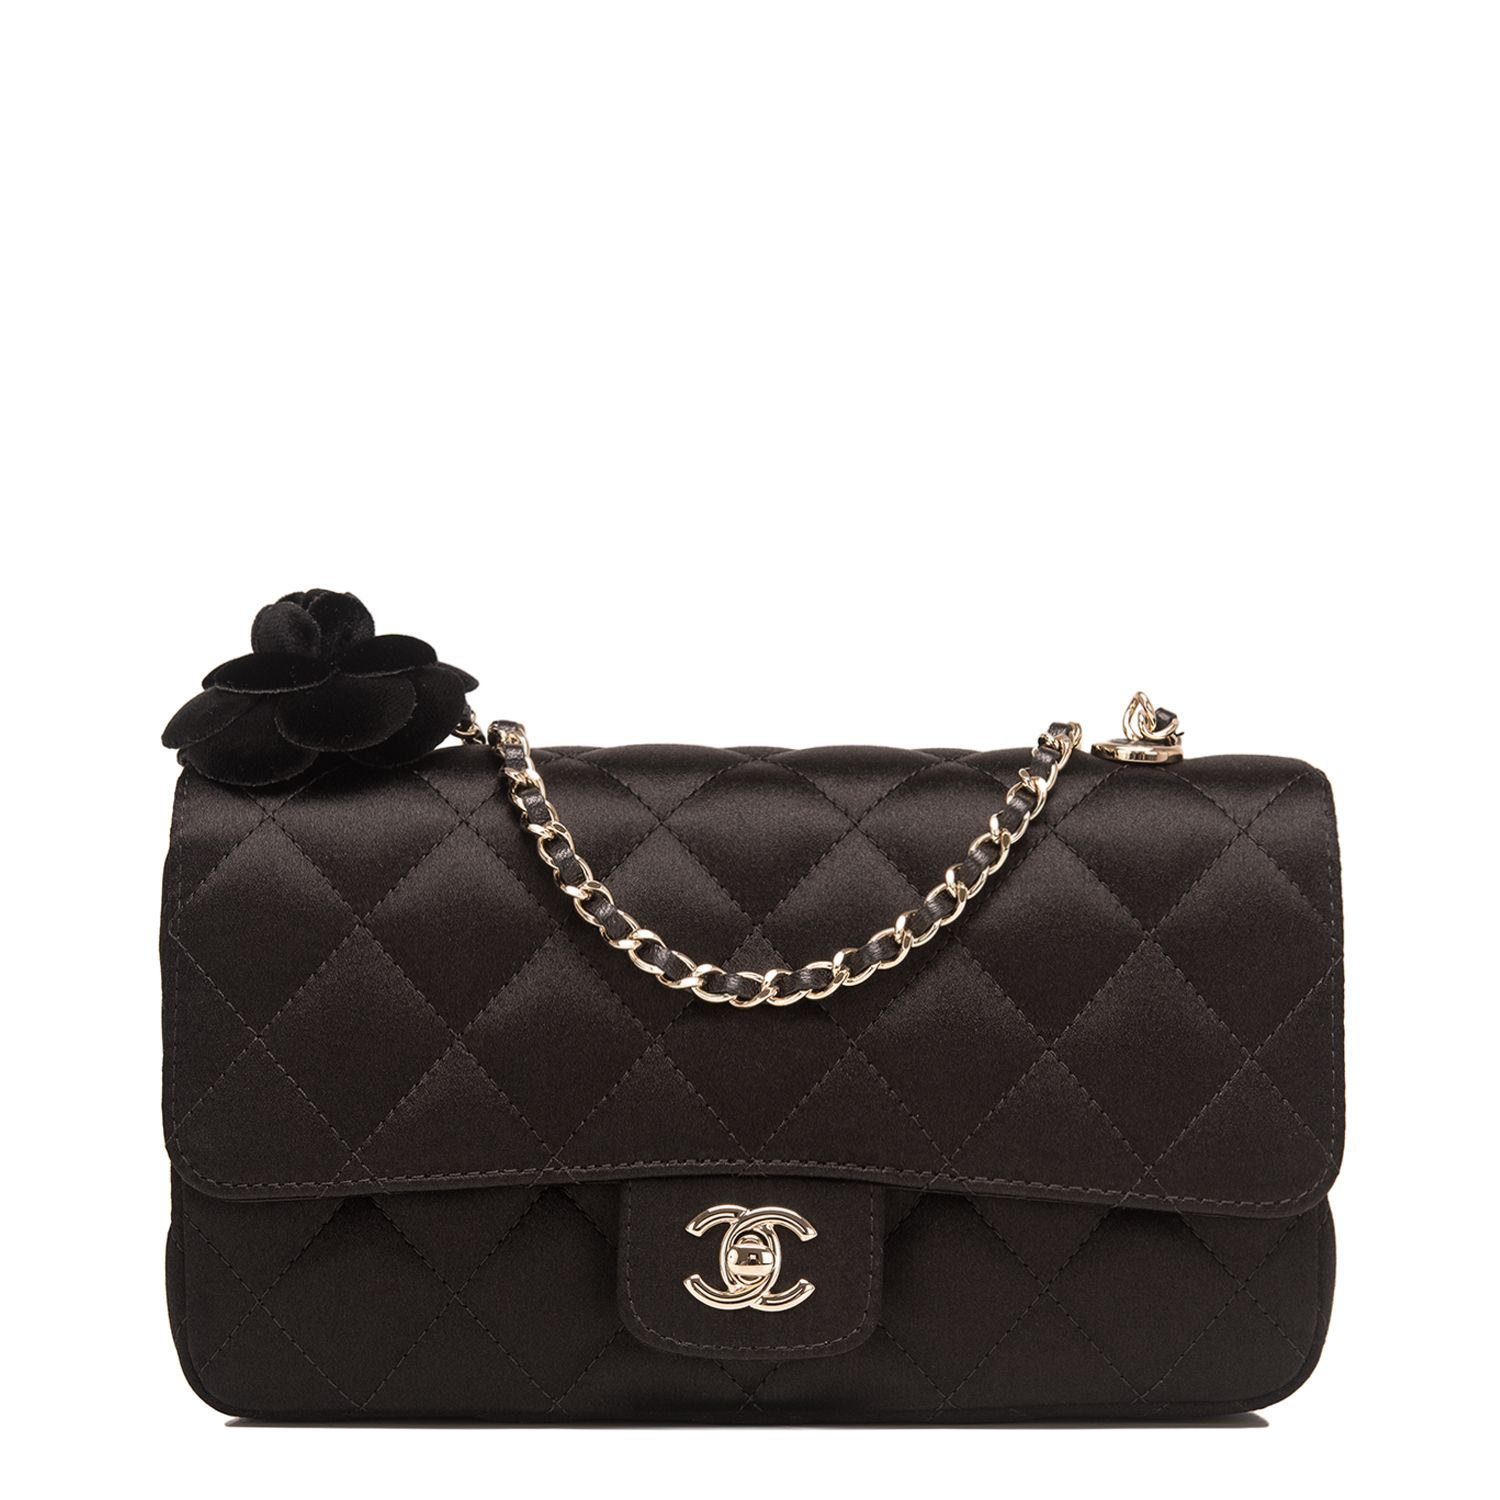 Chanel Black Quilted Satin Camellia Mini Flap Handbag Chanel